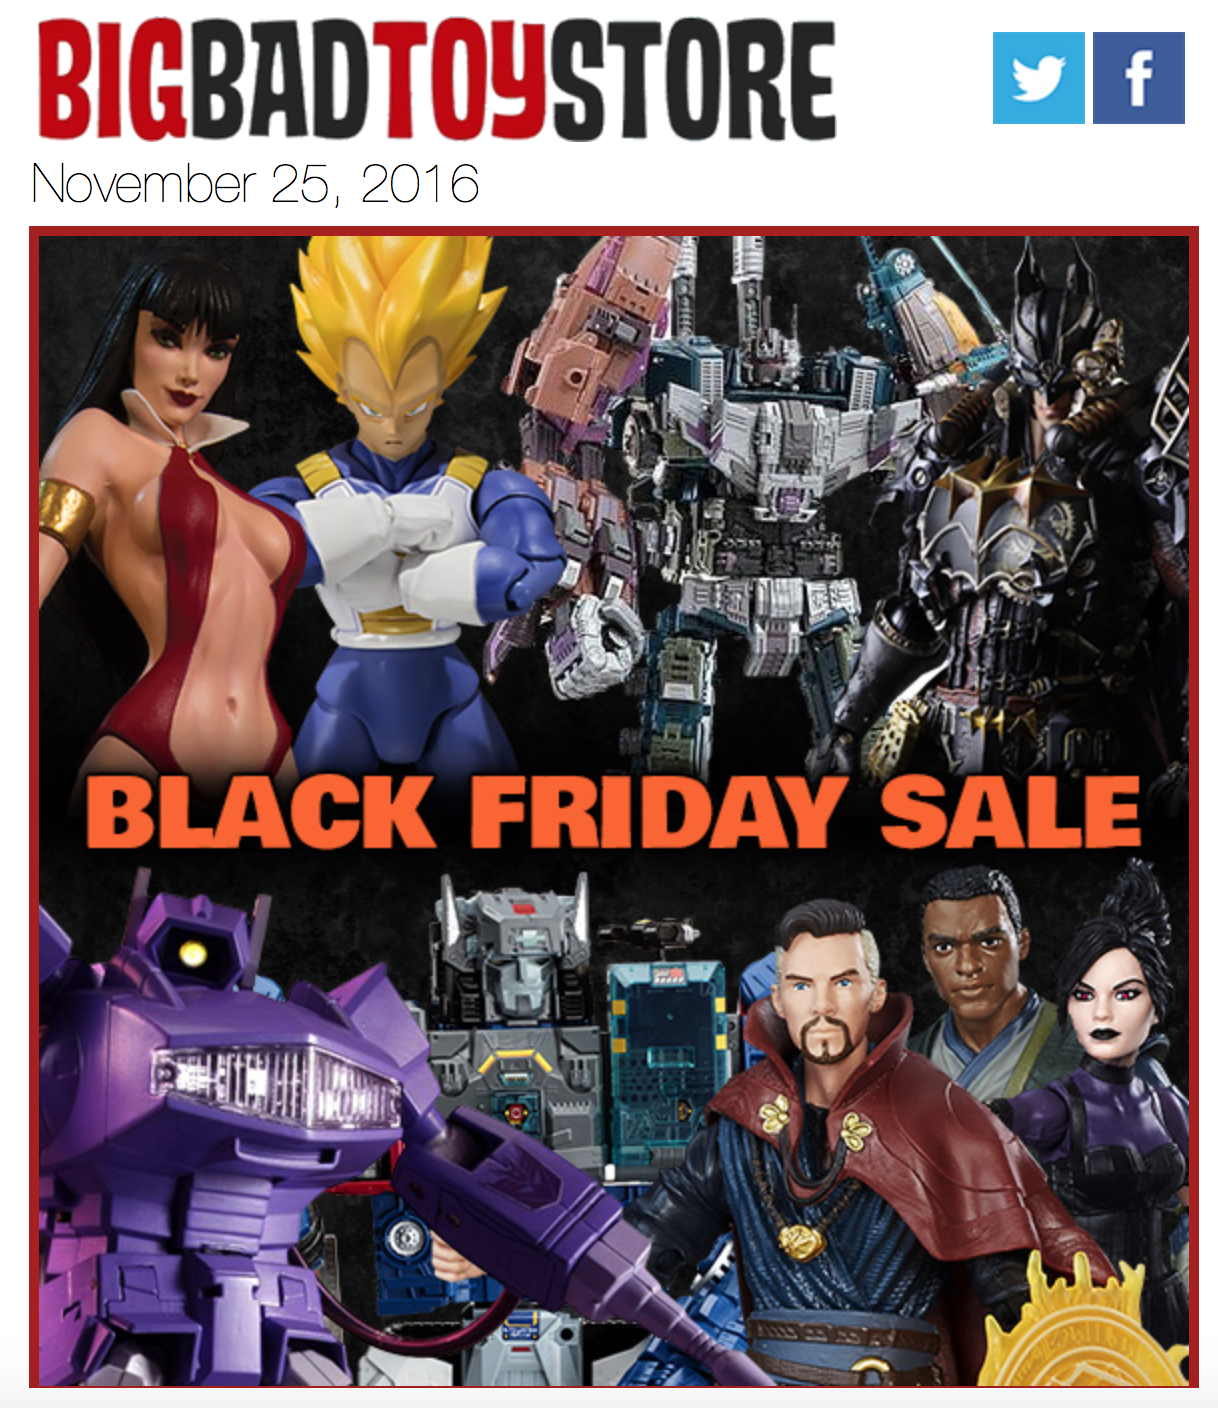 Bigbadtoystore Launches Black Friday Sale Marvel Legends Transformers More Toy Hype Usa